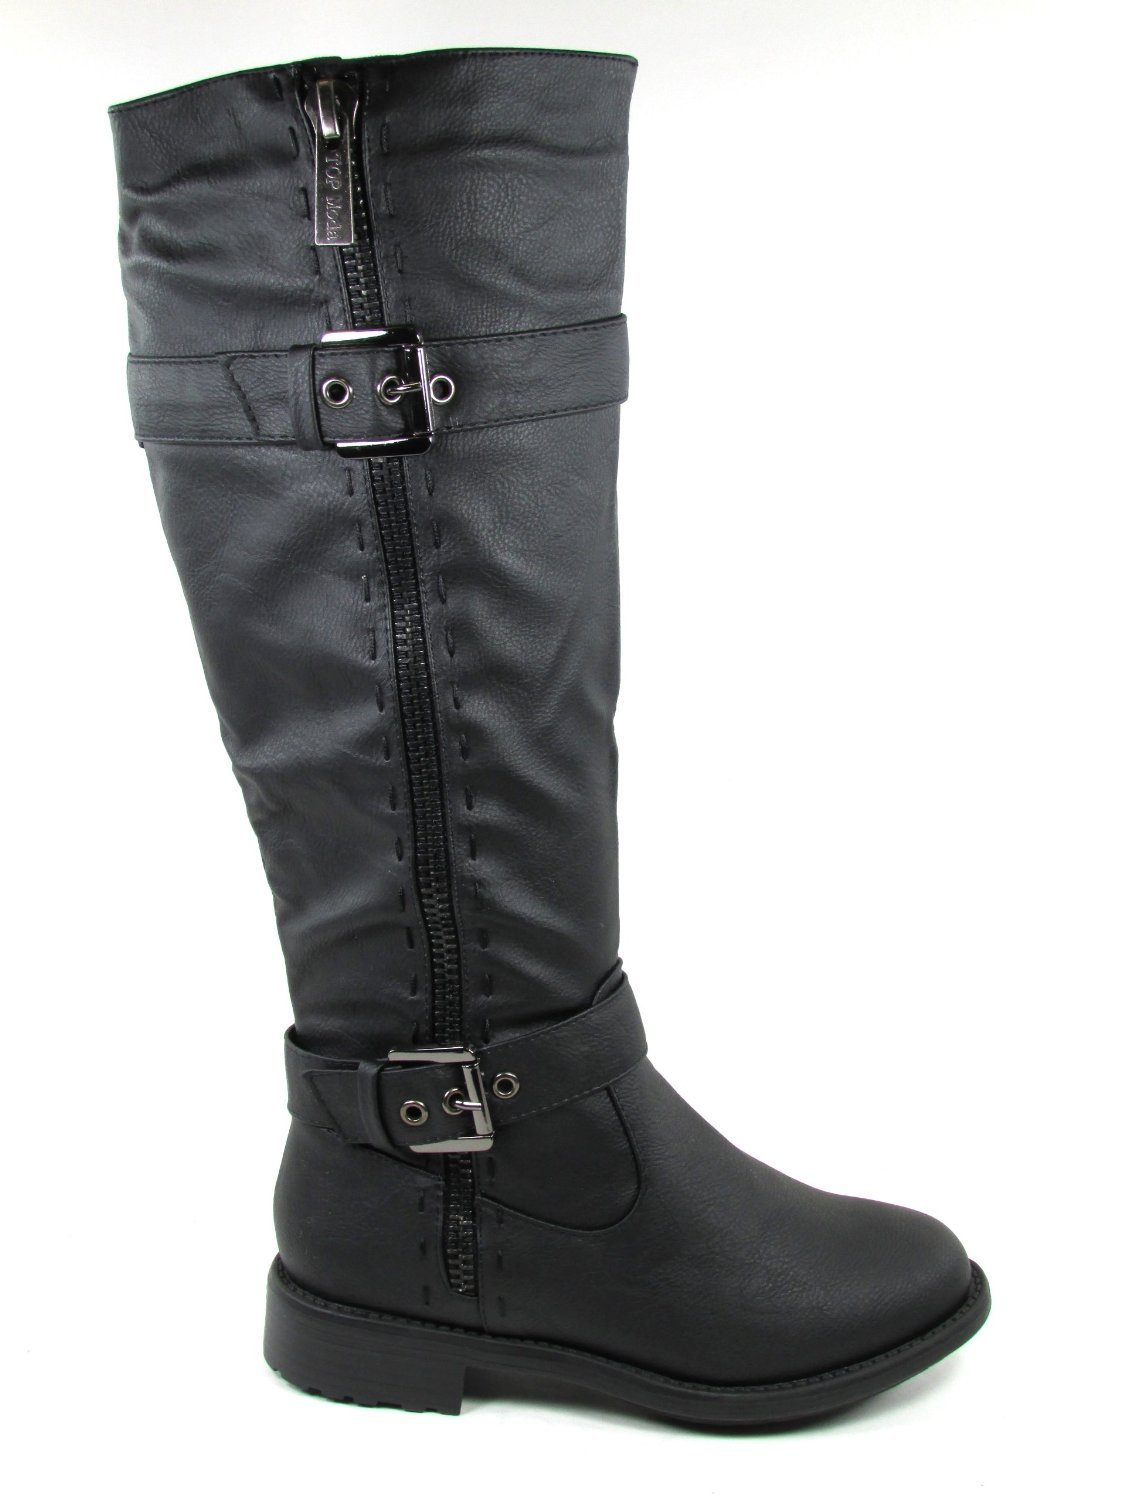 Top Moda Fab 5 Womens Knee High Buckle Riding Boots BLACK,Fab-5 Black 6.5 by Top Moda (Image #2)